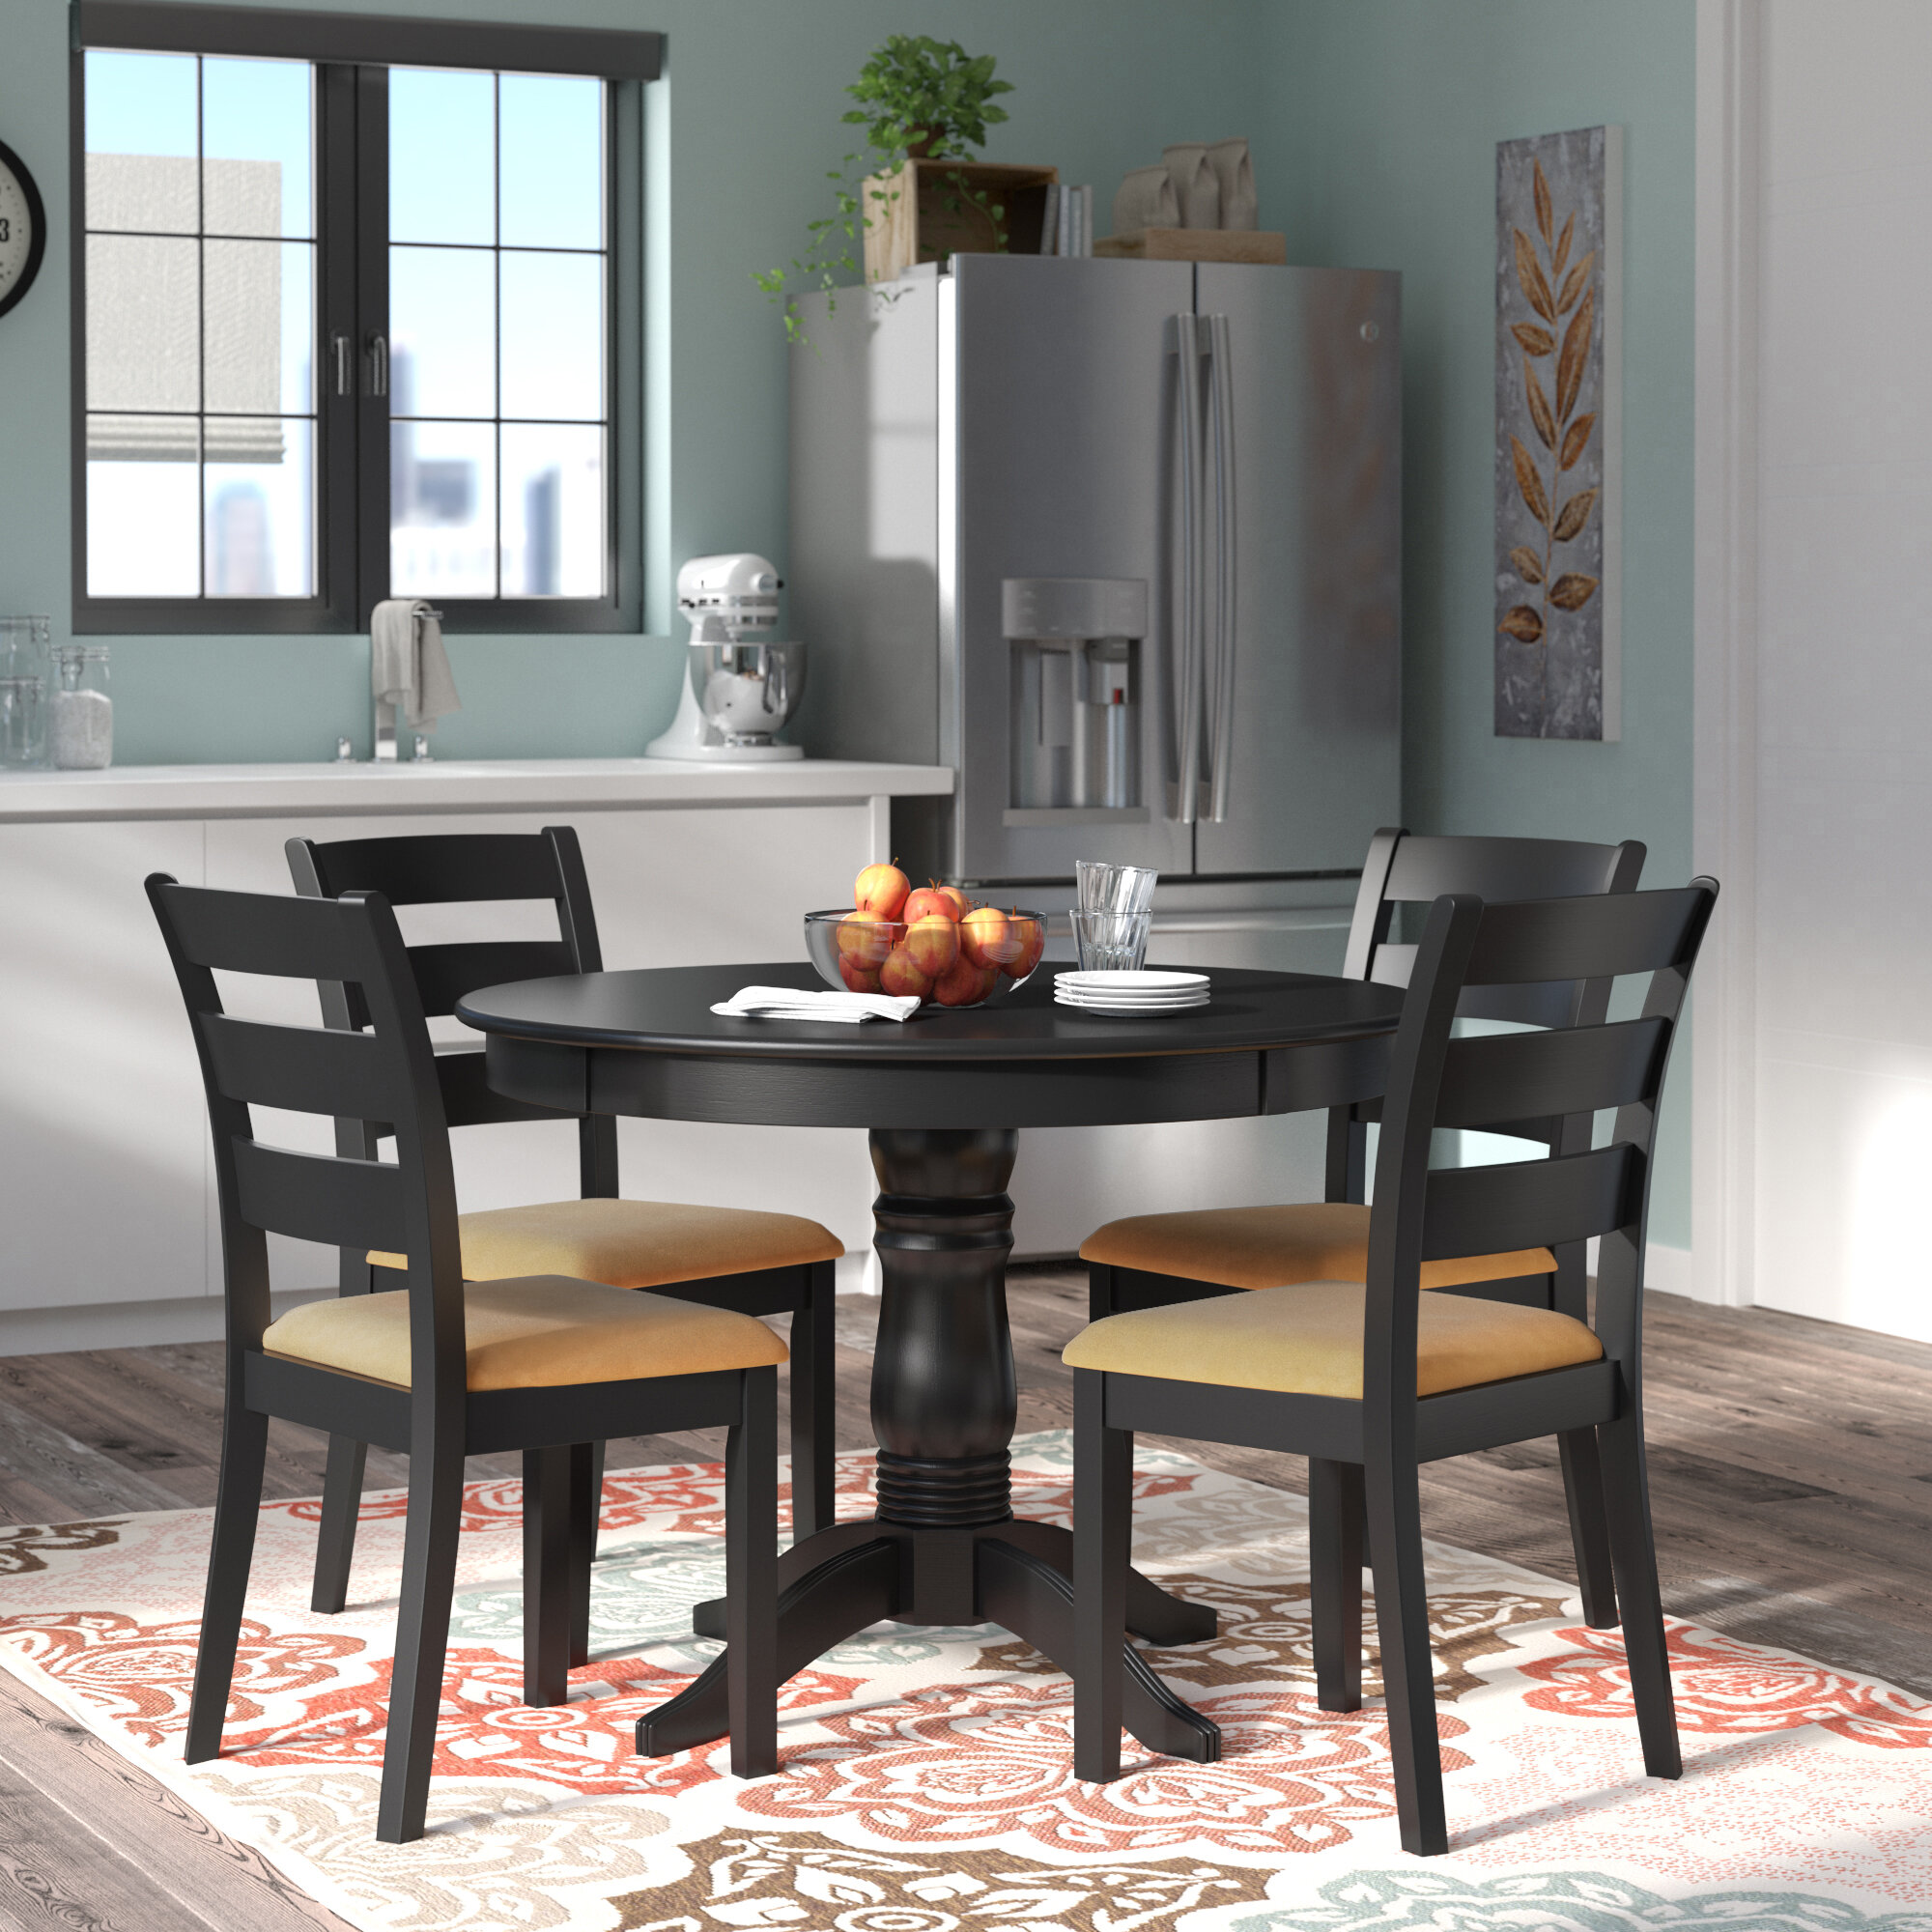 Admirable Oneill 5 Piece Ladder Back Dining Set Beutiful Home Inspiration Cosmmahrainfo